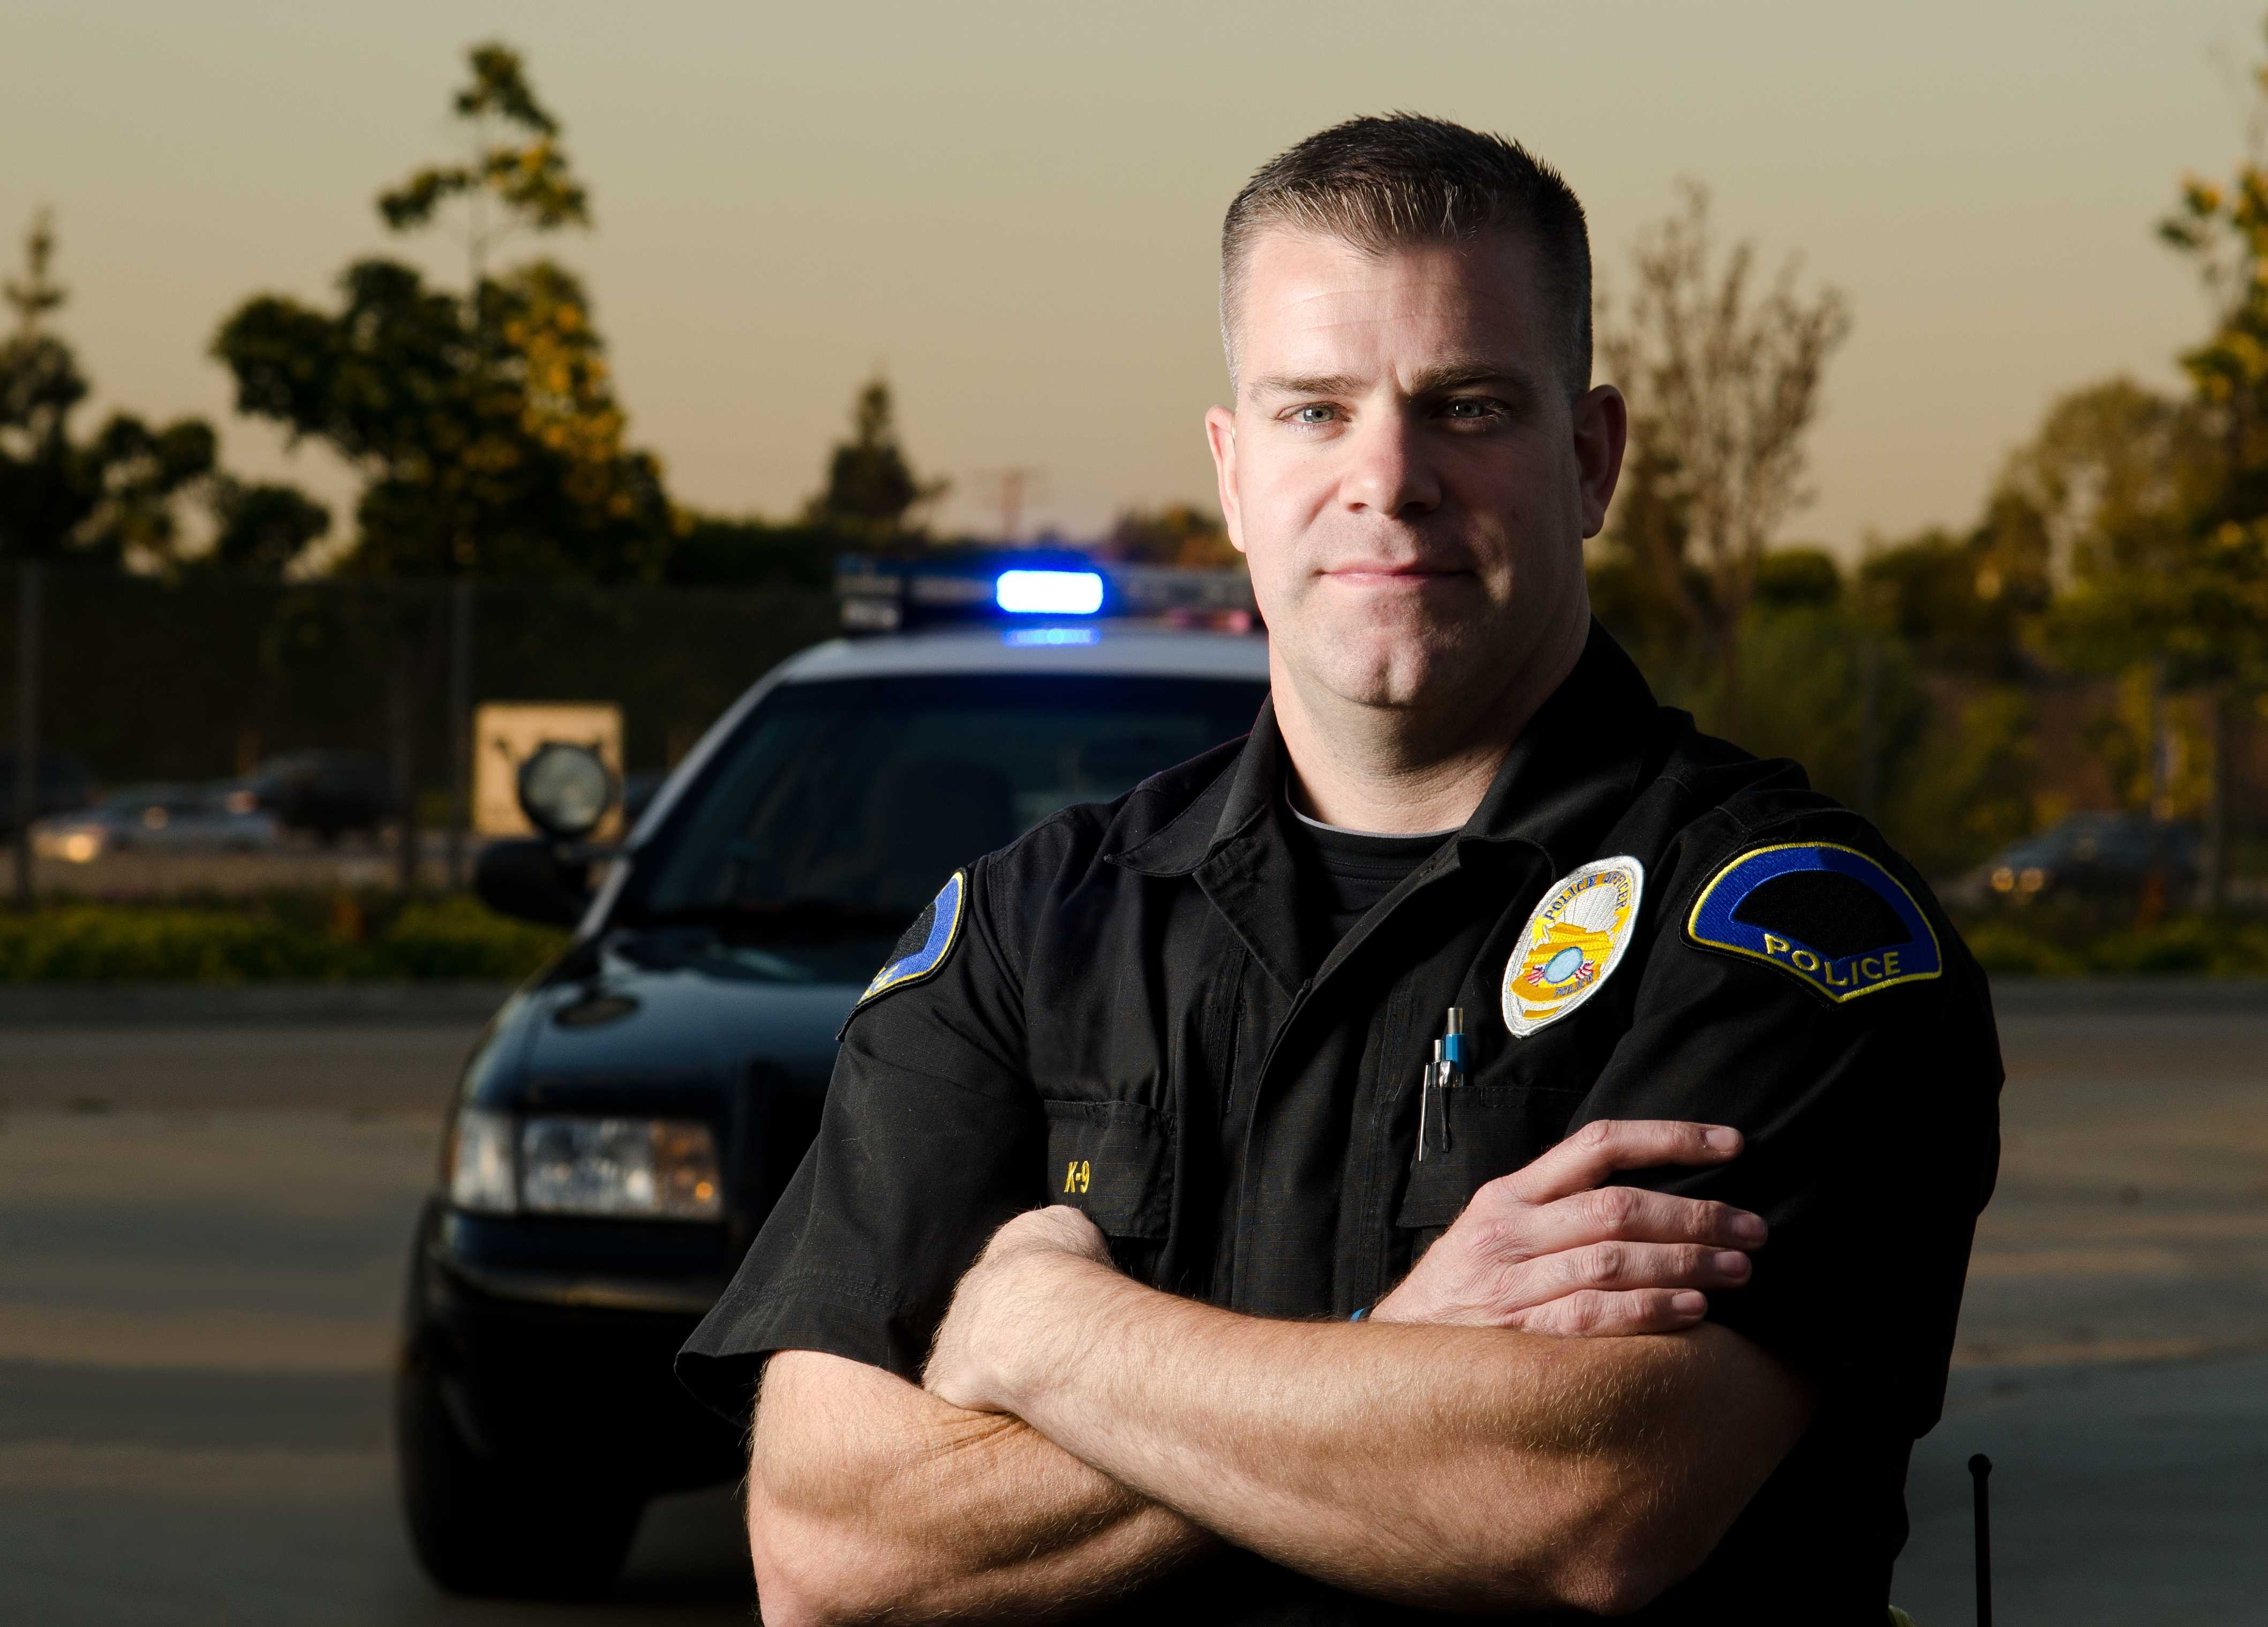 Qualities to become a police officer